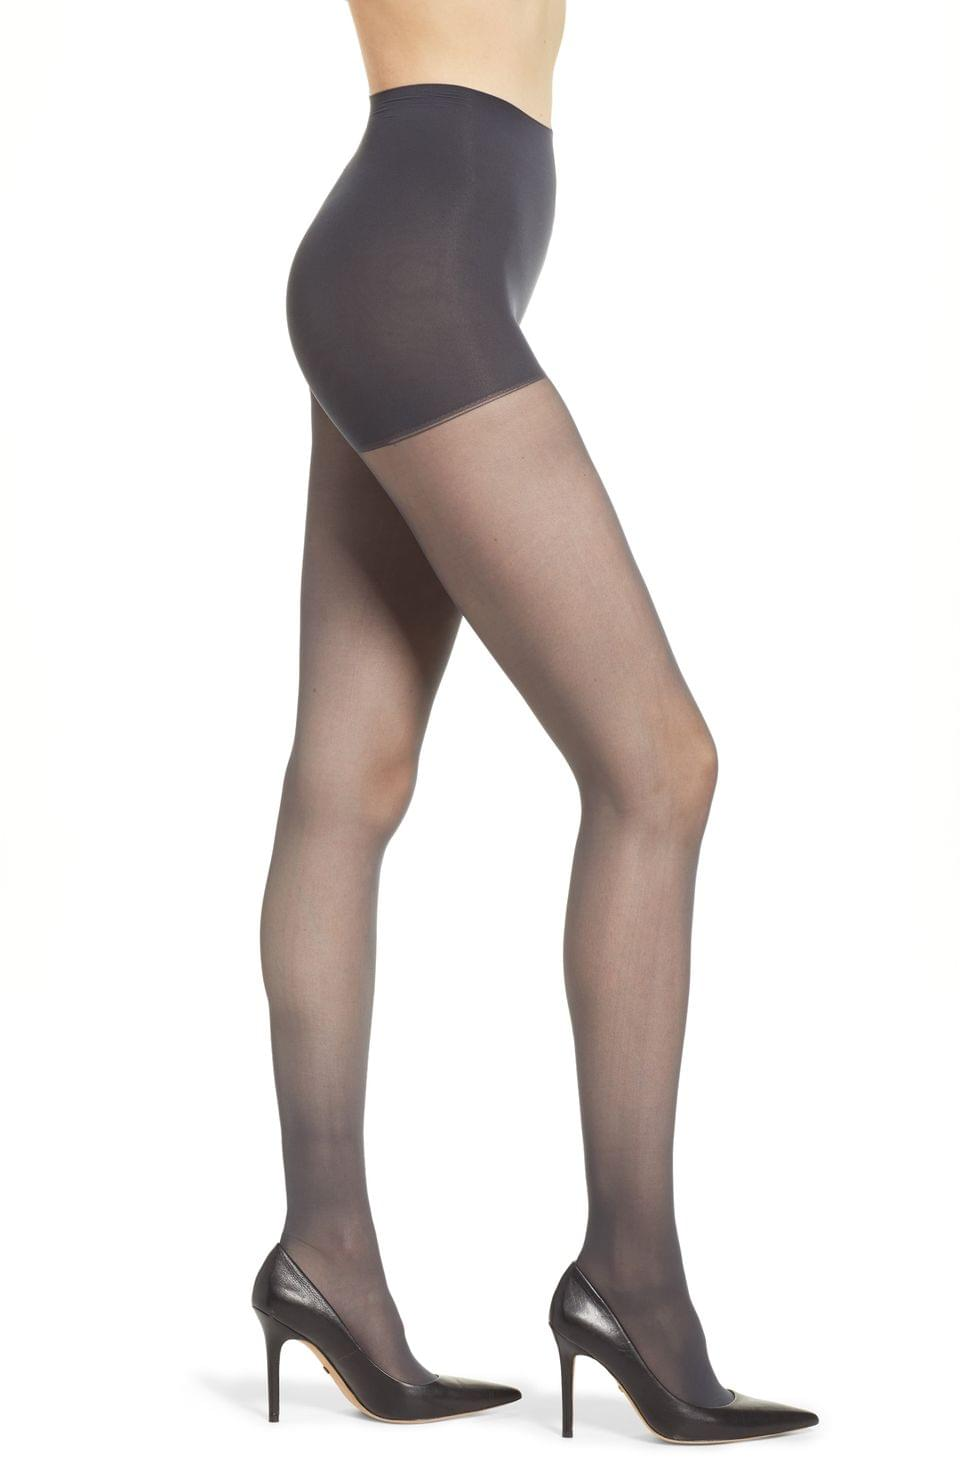 Women's DKNY Light Opaque Control Top Tights (2 for 25)